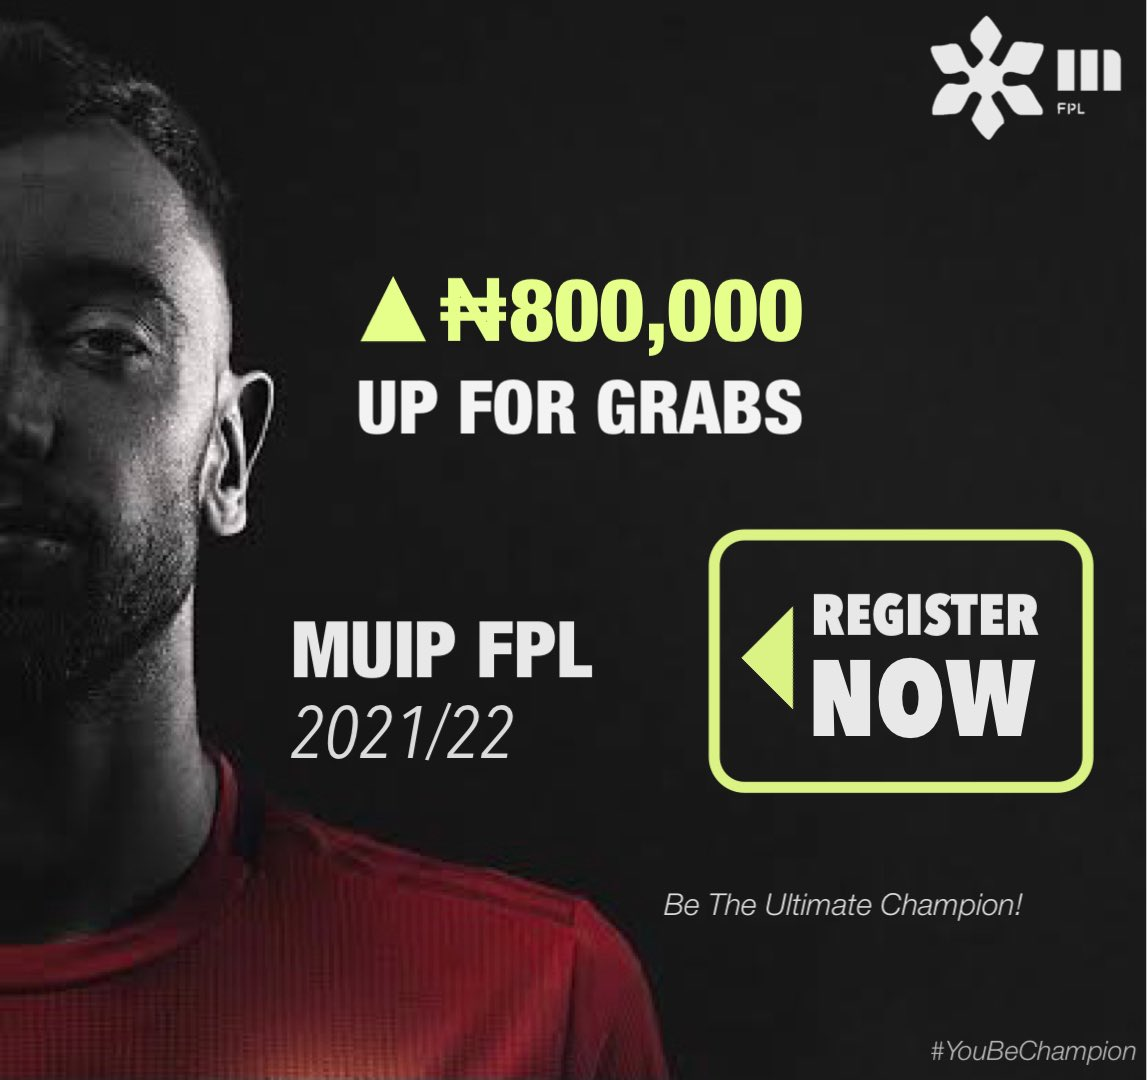 You wan battle for ₦800,000? 💵   • You refer your friends to MUIP FPL 2021/22? 𝐖𝐞 𝐠𝐨 𝐩𝐚𝐲 𝐲𝐨𝐮 ₦𝟏,𝟐𝟎𝟎 𝐩𝐞𝐫 𝐩𝐞𝐫𝐬𝐨𝐧 𝐲𝐨𝐮 𝐫𝐞𝐟𝐞𝐫.  You interested? DM @MuipFPL Now! 📨   #YouBeChampion https://t.co/I6Cs8KjRs1